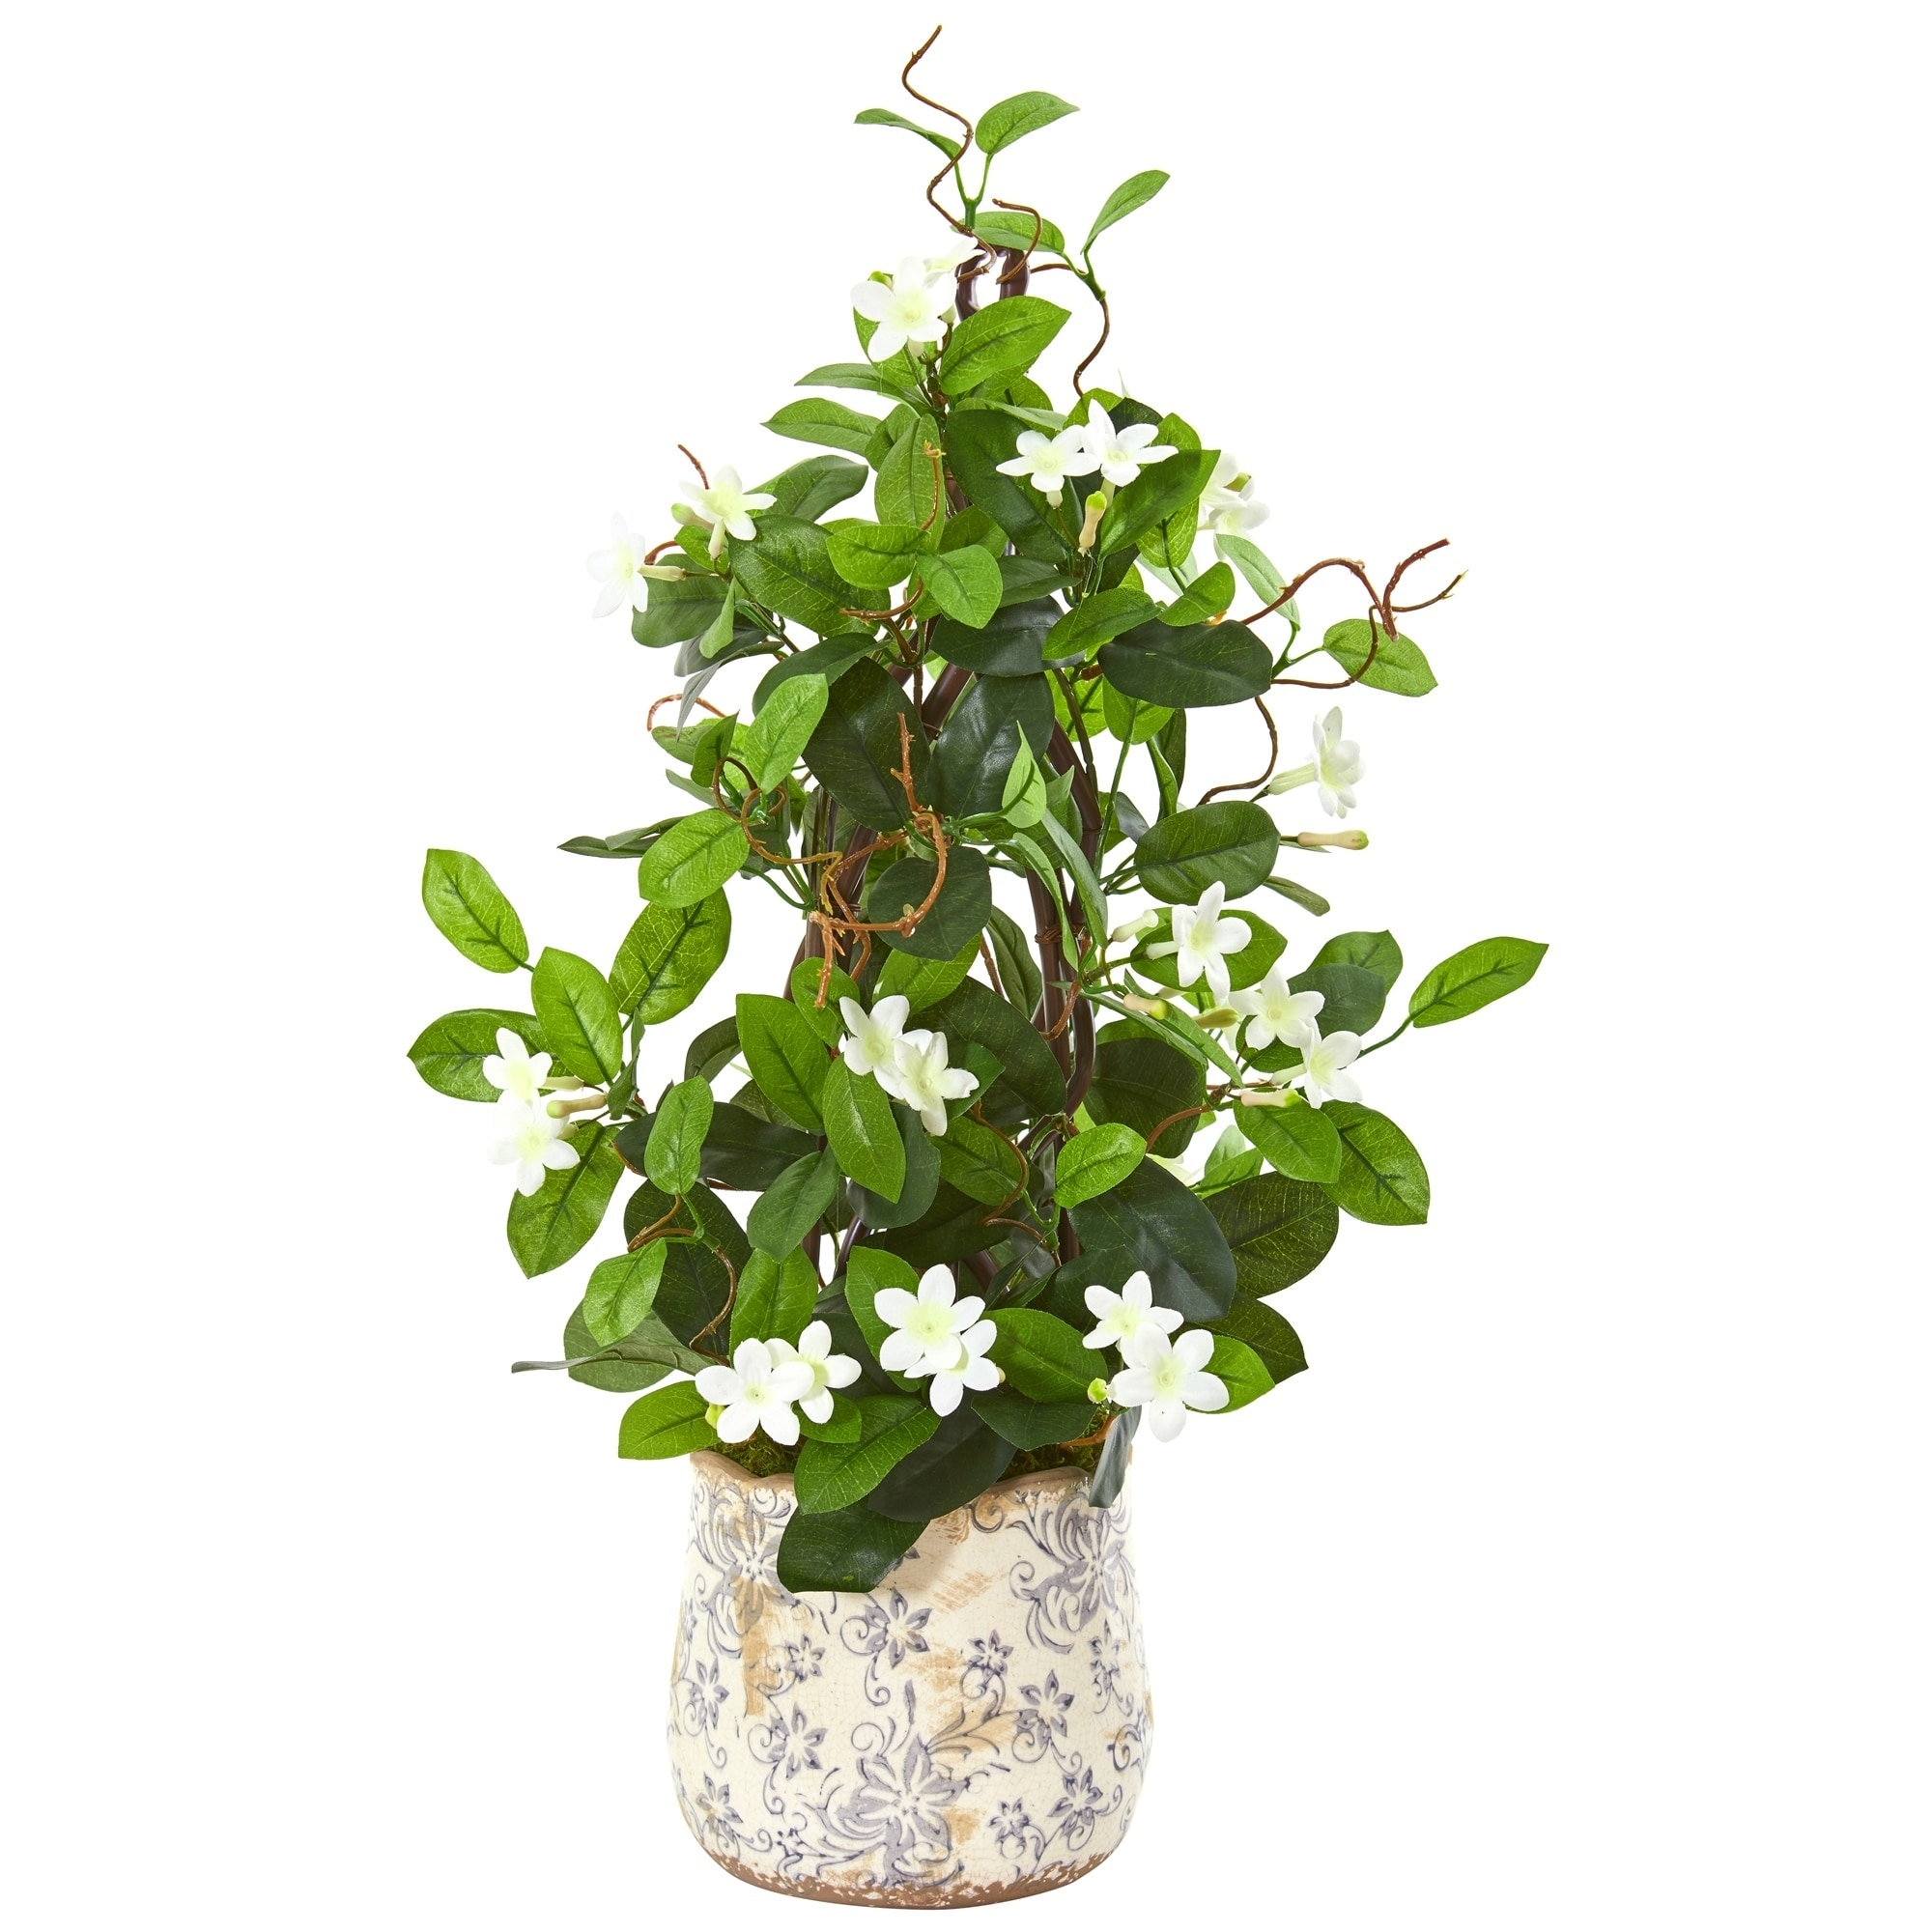 25 Stephanotis Artificial Climbing Plant in Decorative Planter